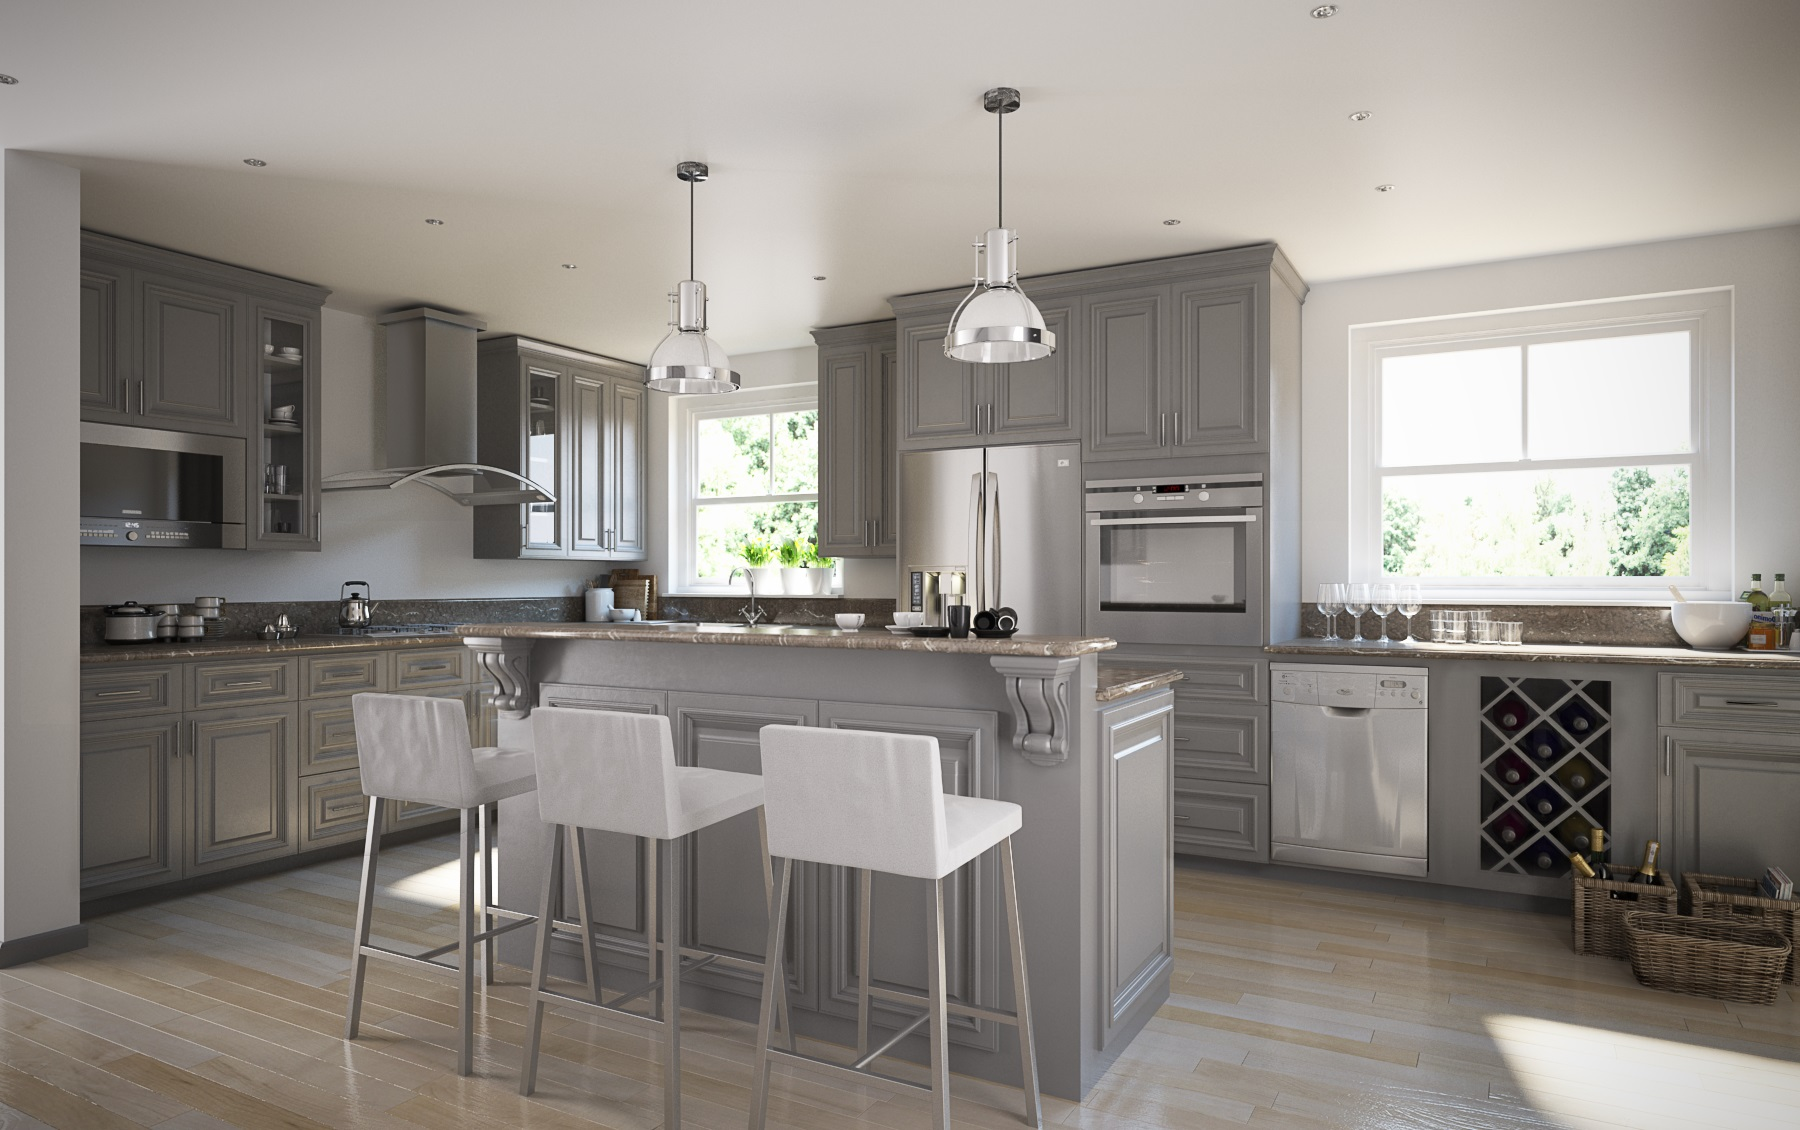 Roosevelt Steel Grey Kitchen Cabinets - Willow Lane Cabinetry